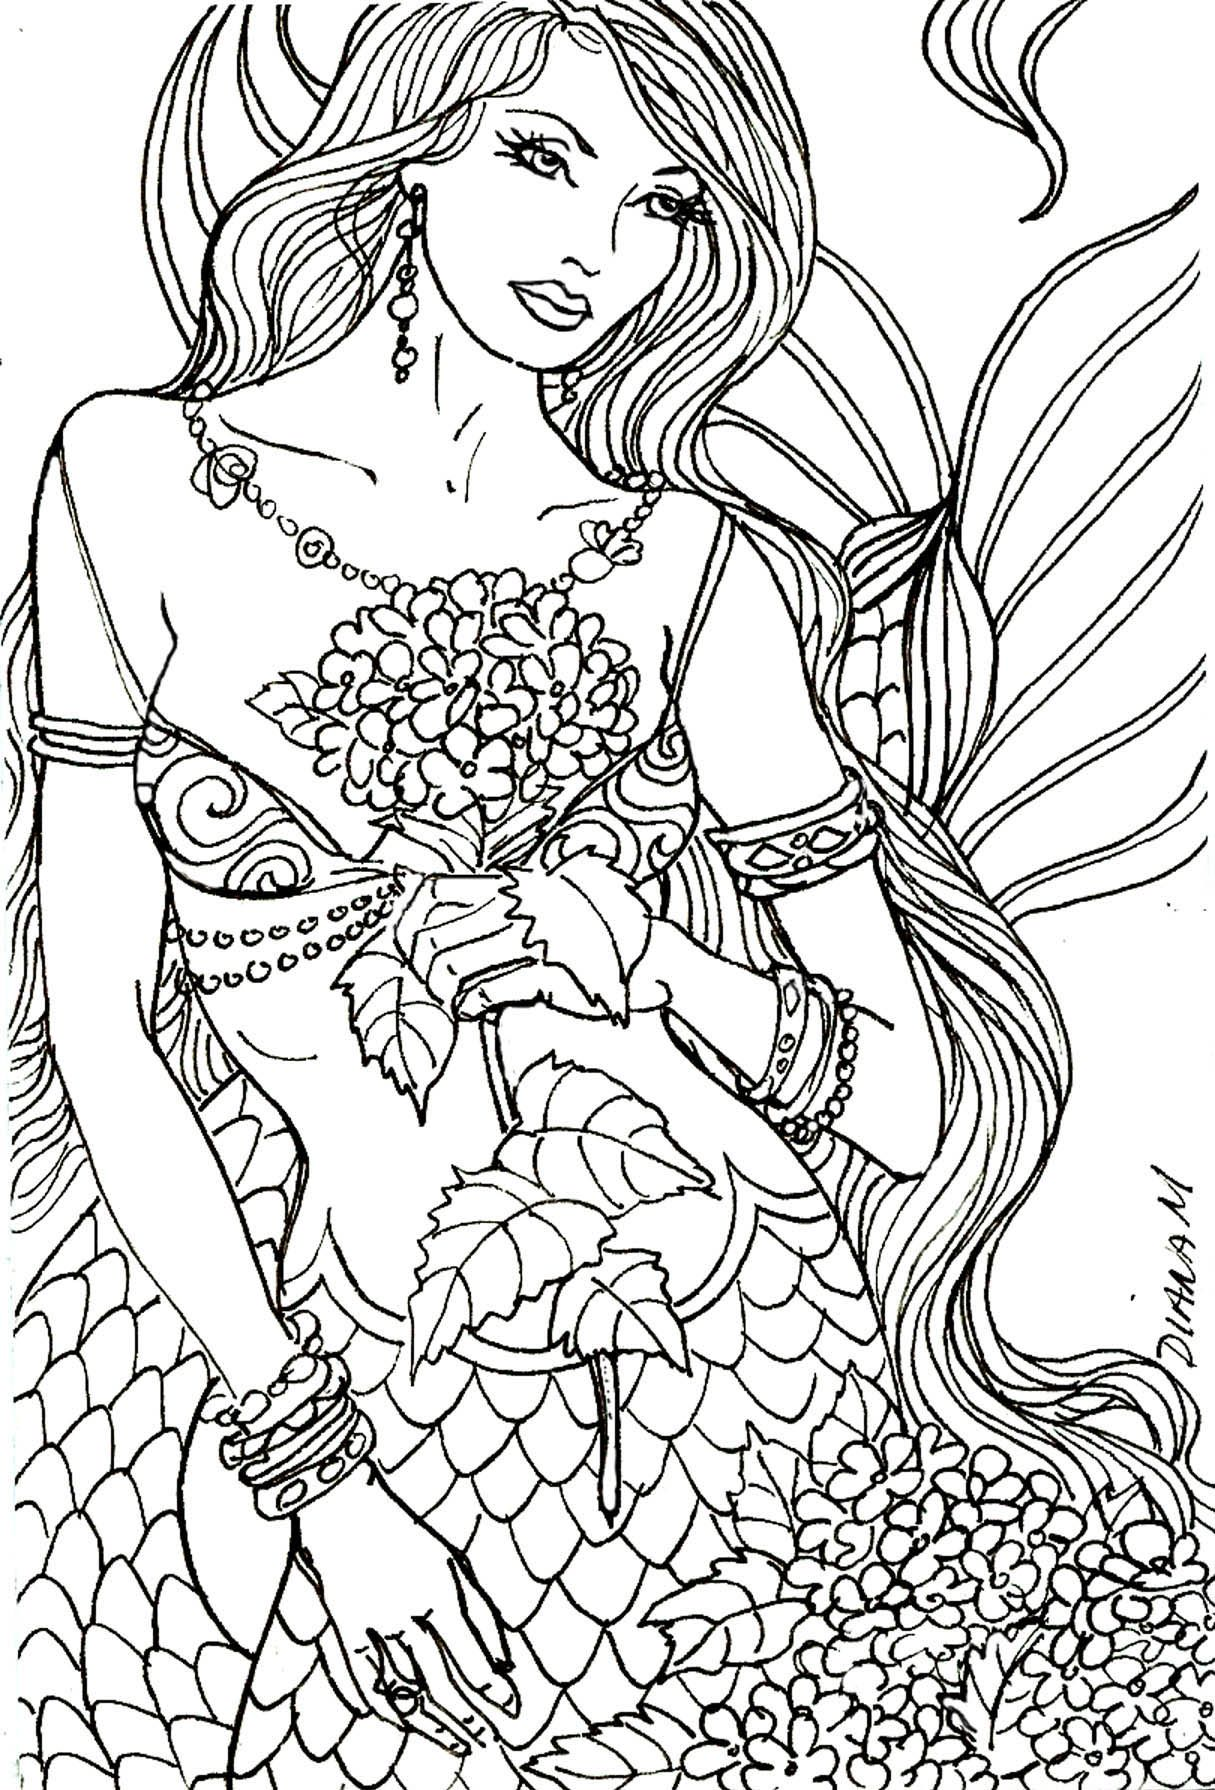 blue delight fantasy characters cosplay costuming ideas pintere - Coloring Pages Mermaids Realistic